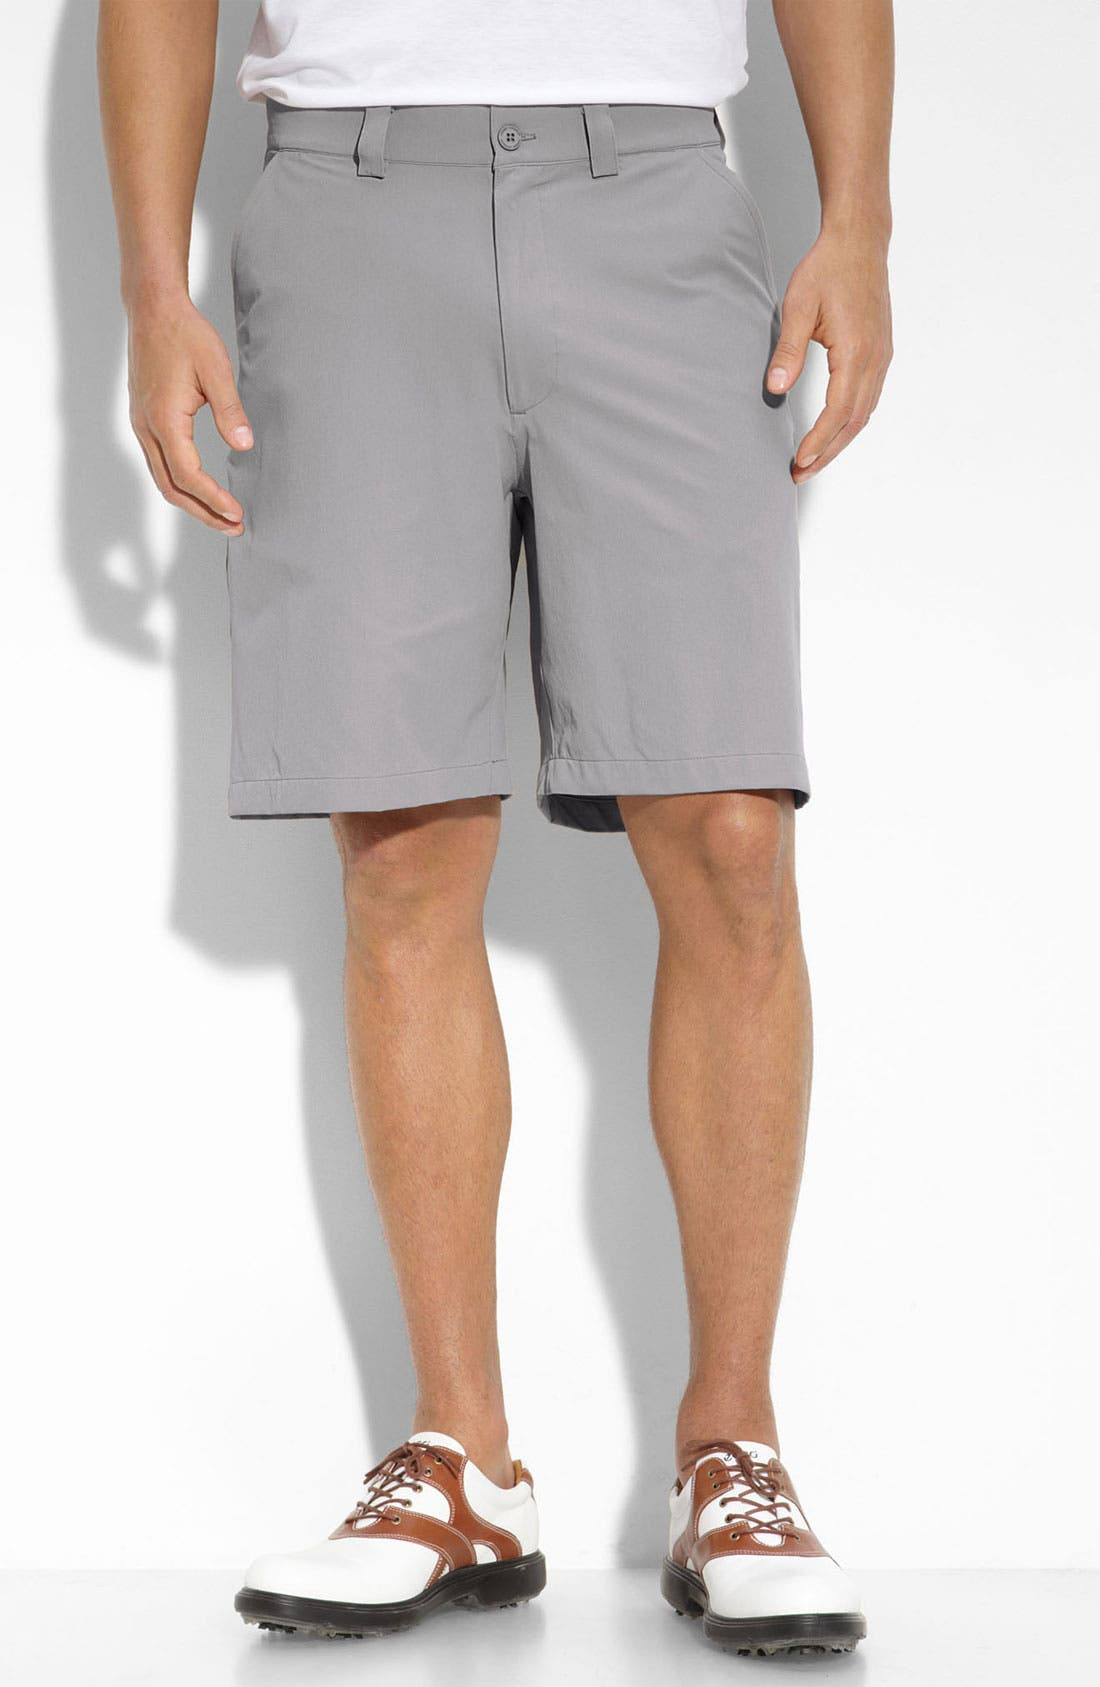 Alternate Image 1 Selected - Under Armour 'Bent Grass' HeatGear® Golf Shorts